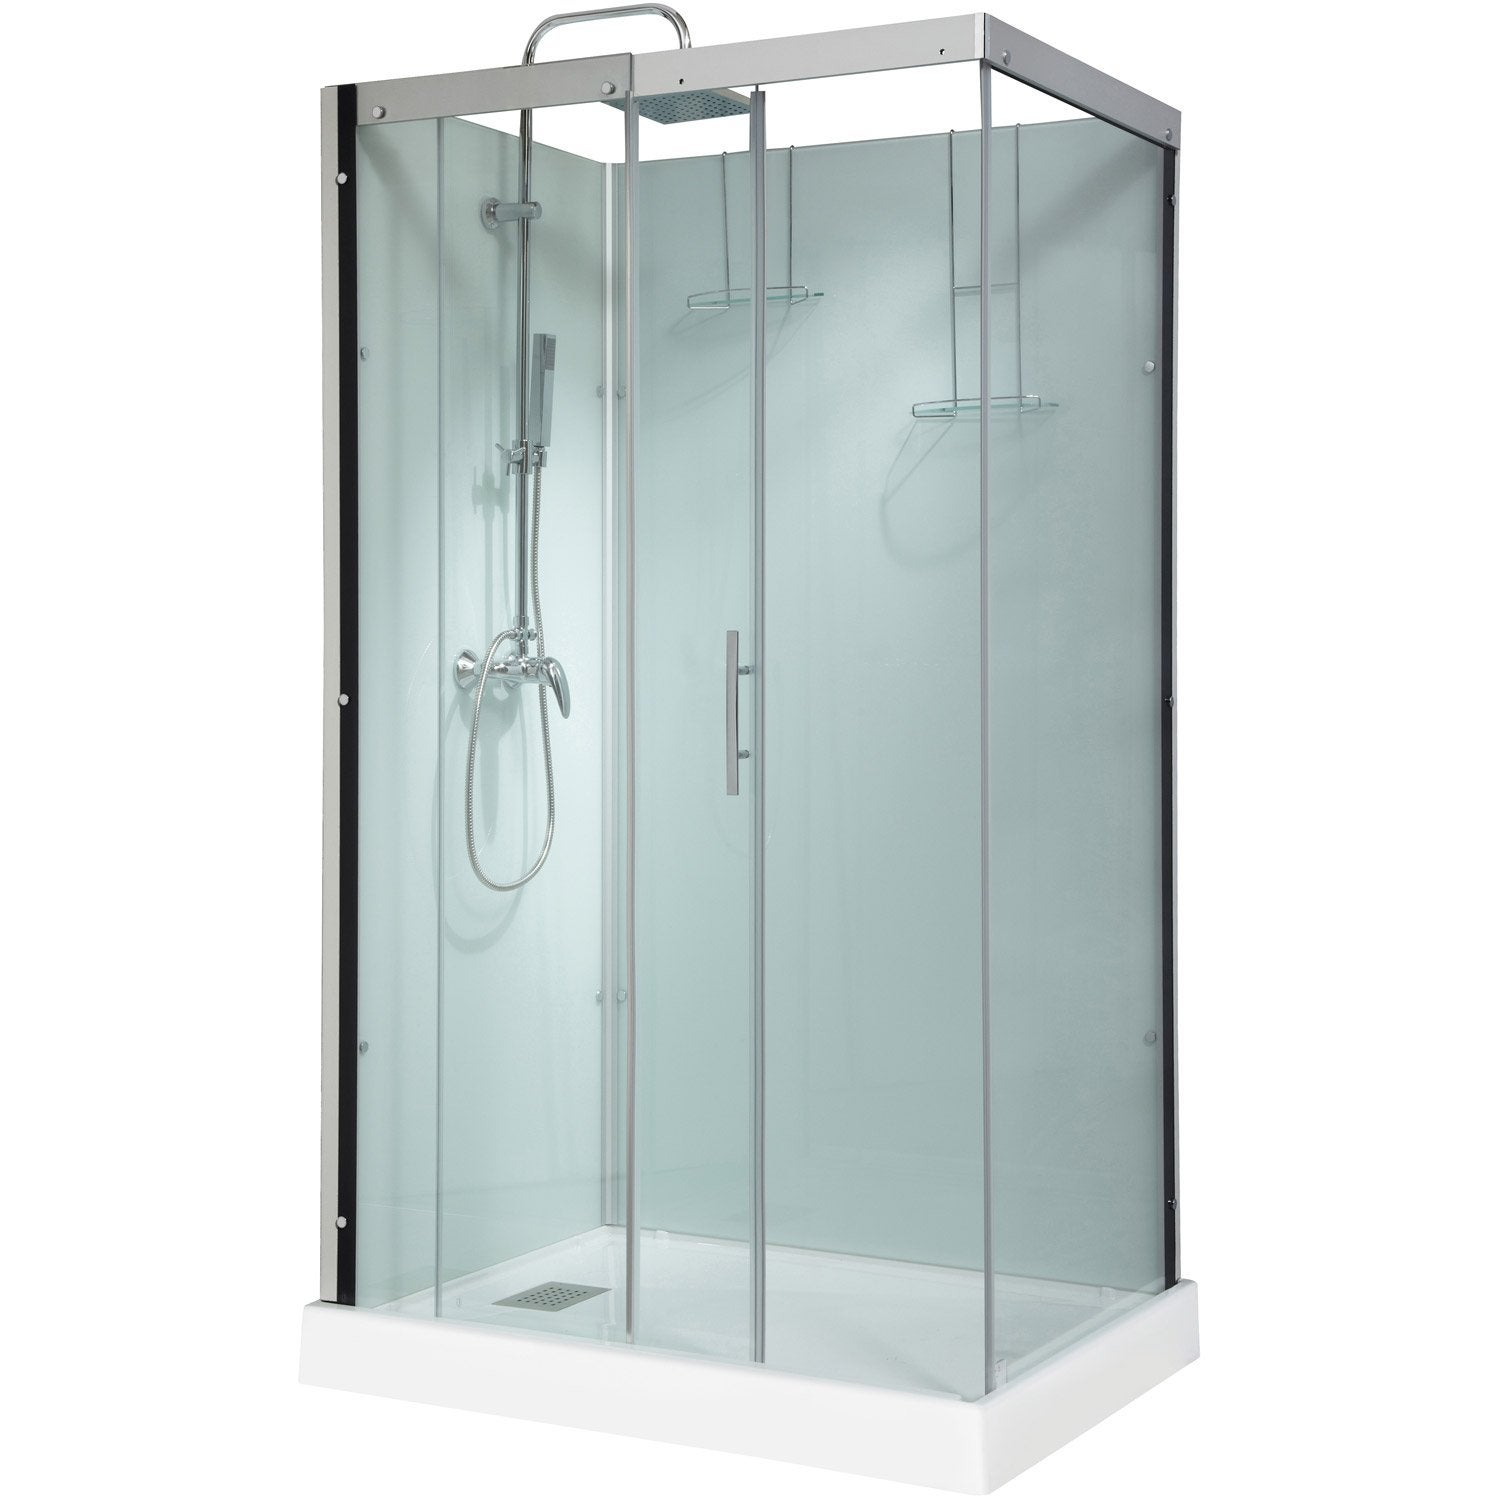 Cabine de douche thalaglass 2 simple mitigeur rectangulaire 120x90 cm leroy - Cabine de douche simple ...